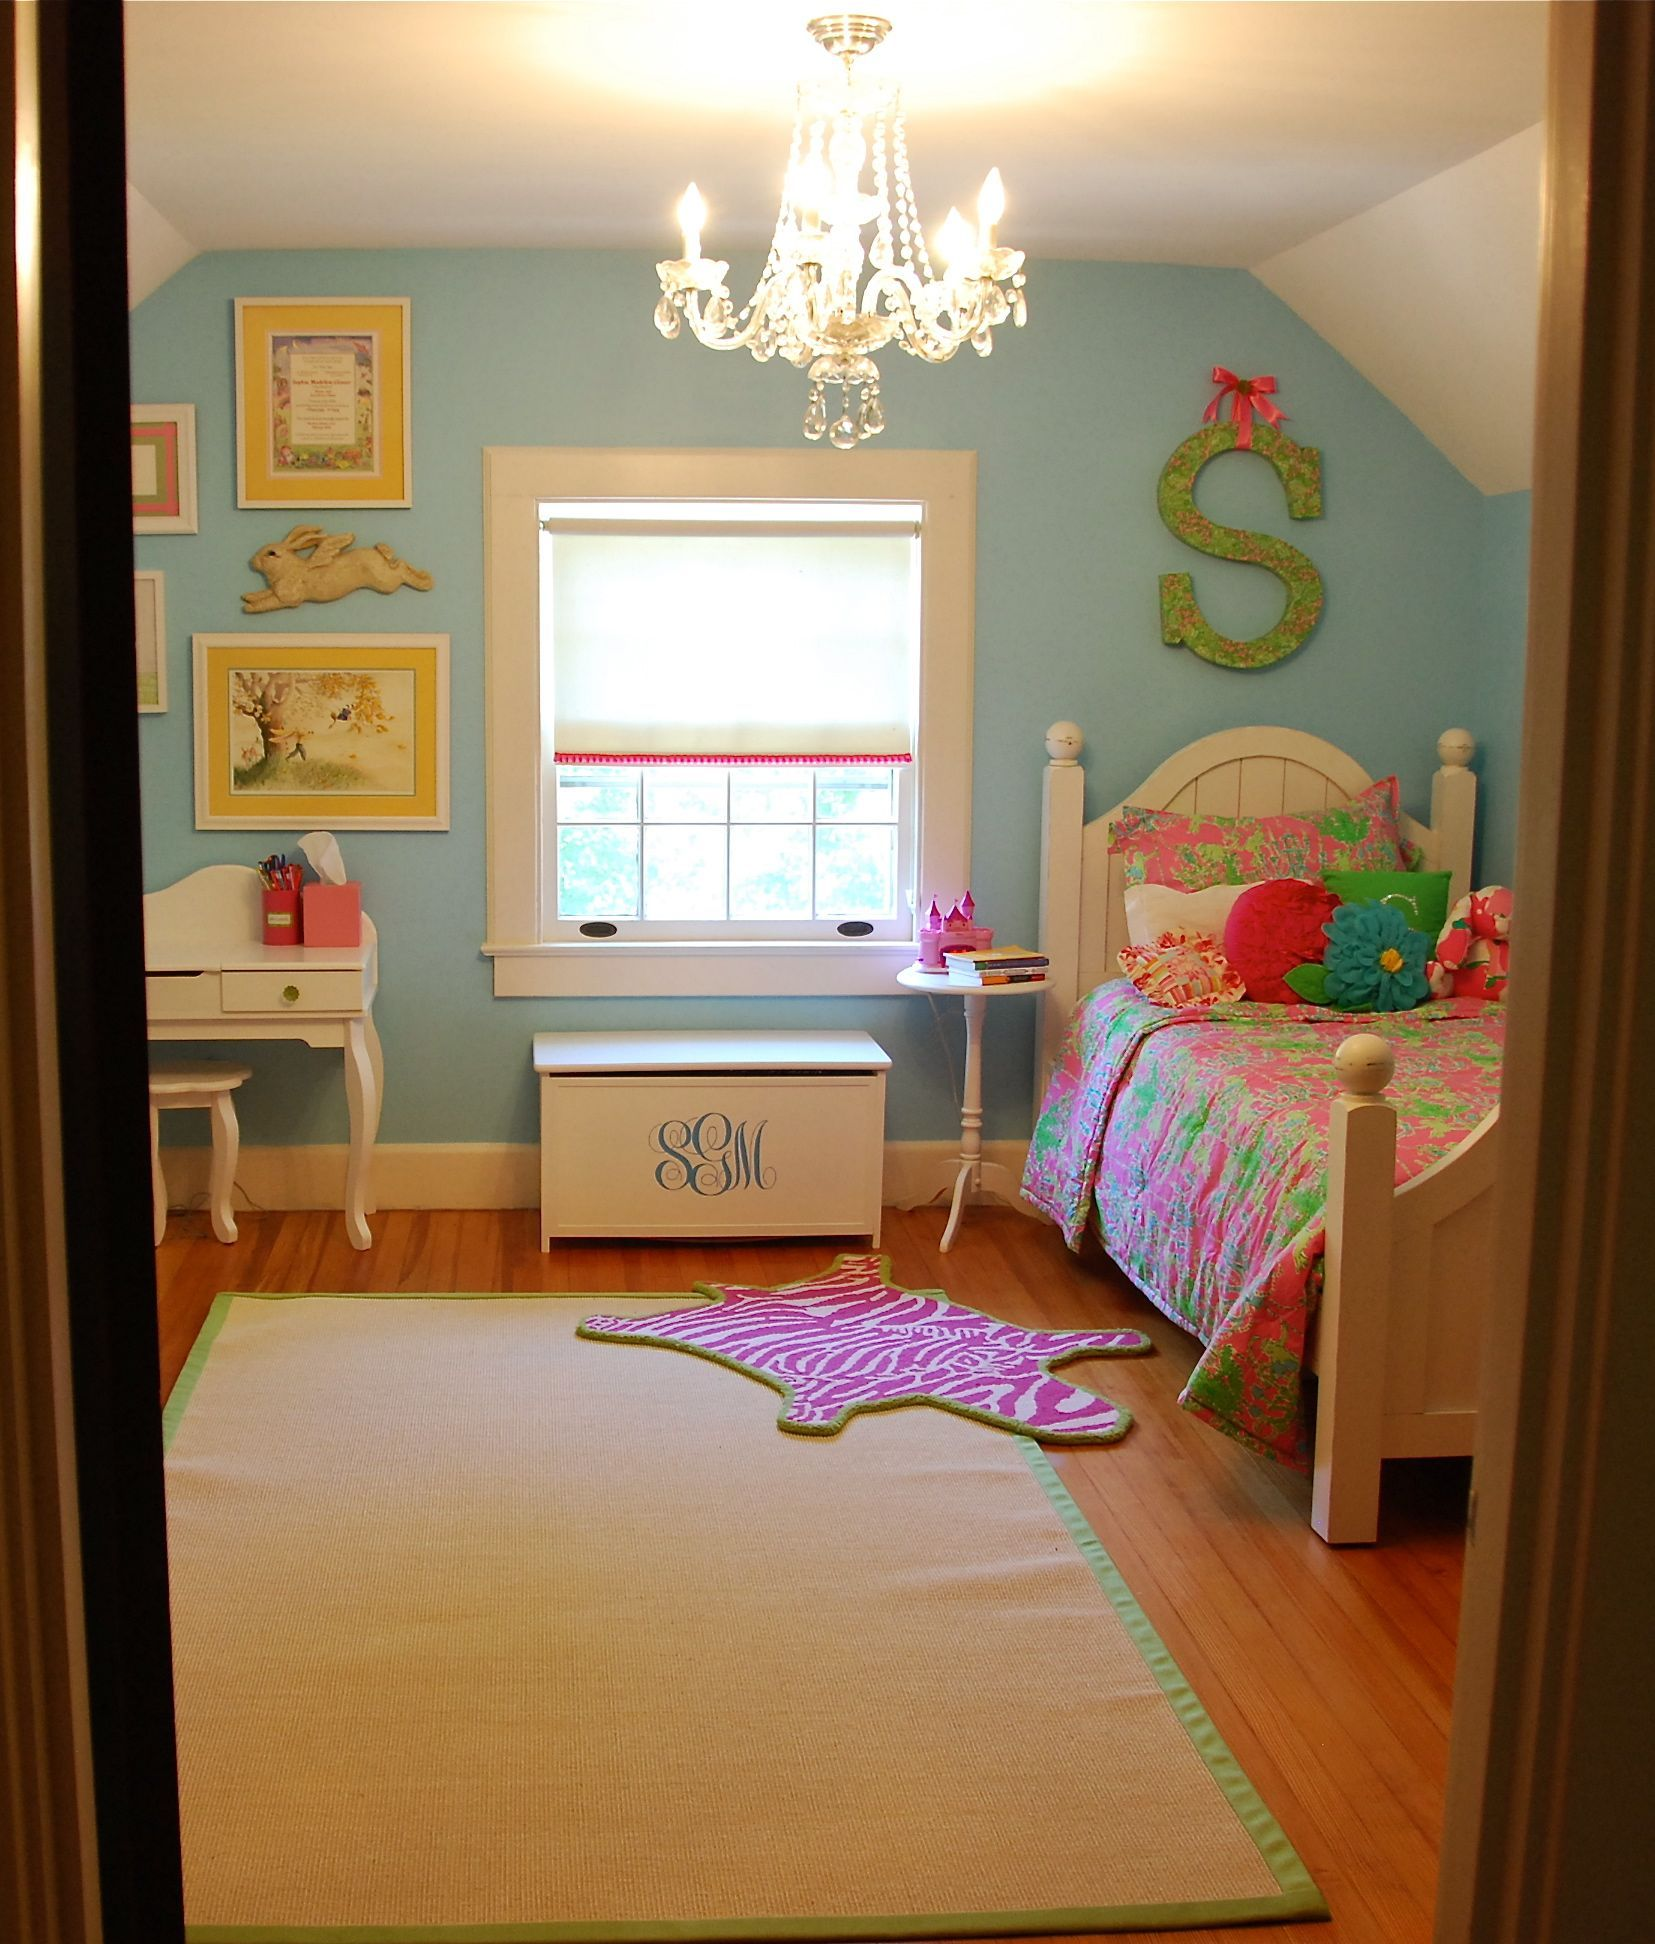 Before And After Pictures Of Bedroom Makeovers Bedroom Ideas Pinterest Diy Boy Lamps For Bedroom Anime Fan Bedroom: Room Decorating Before And After Makeovers